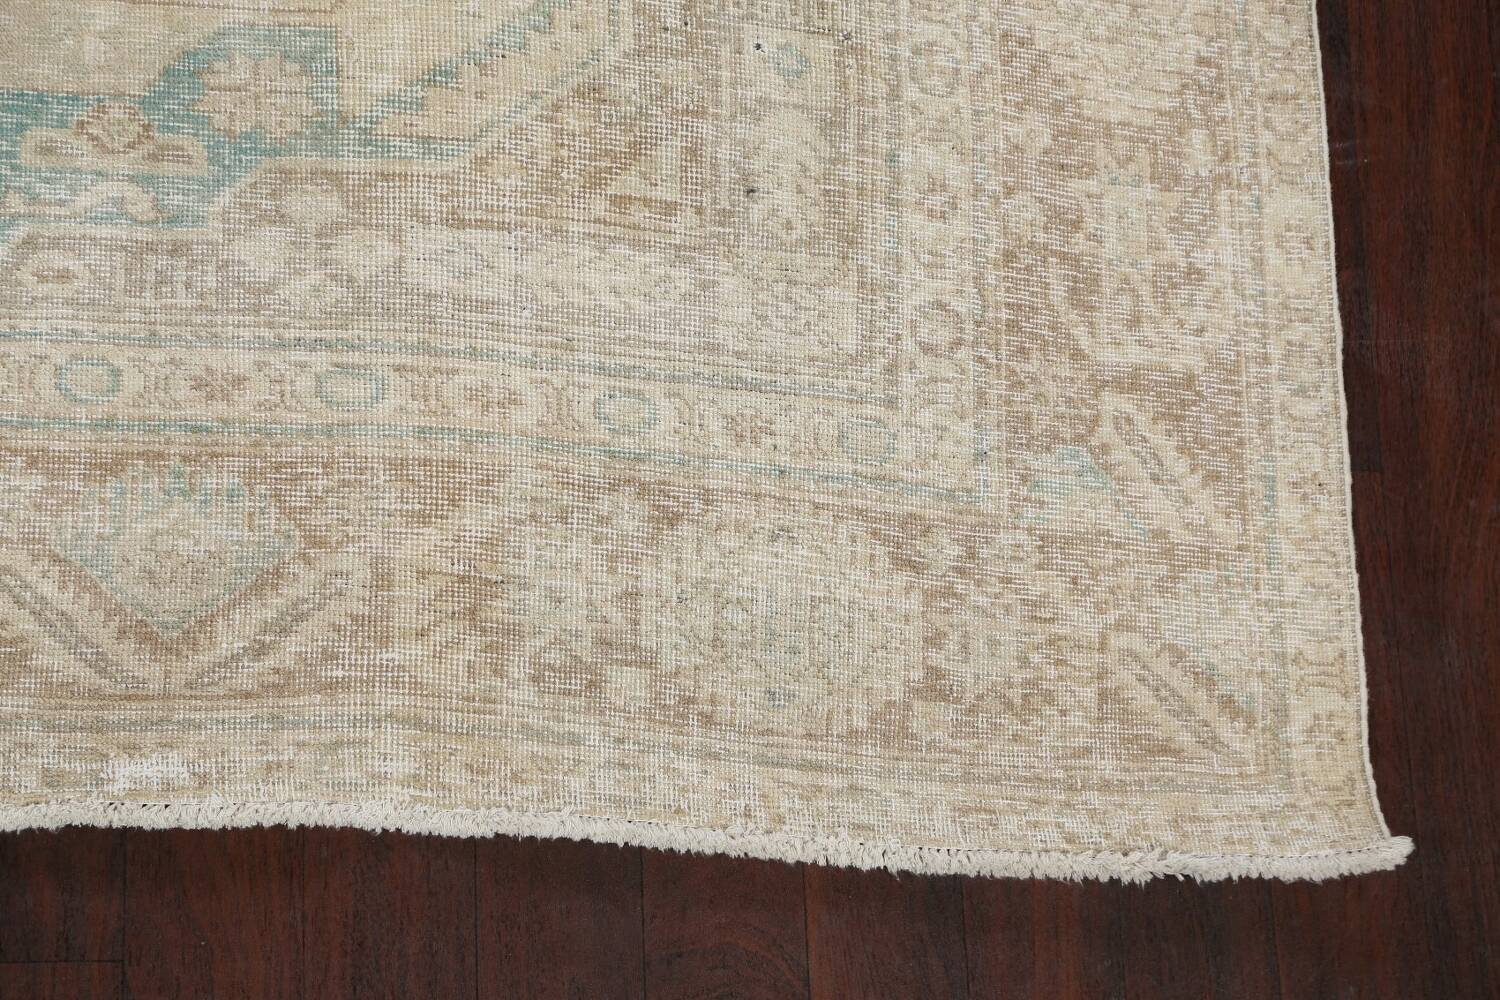 Antique Muted Distressed Tabriz Persian Area Rug 9x13 image 5